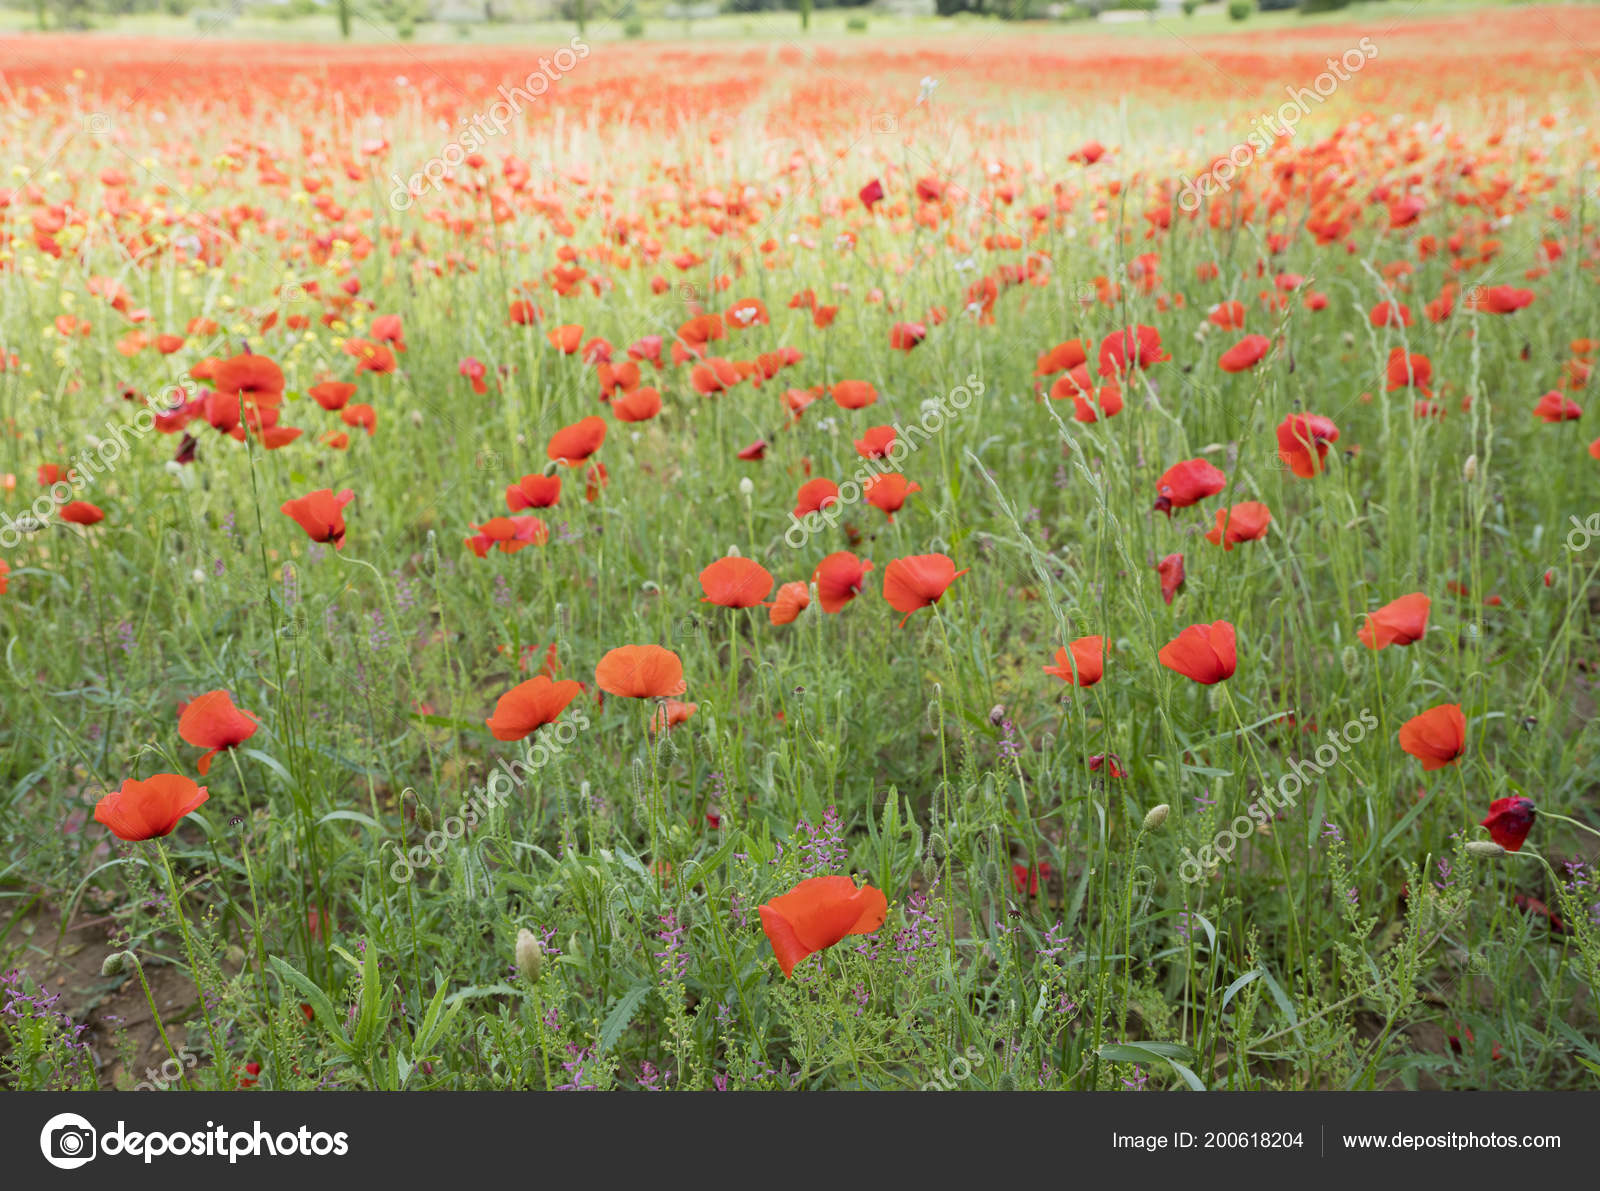 Field full of blooming poppies in french provence area in summer field full of blooming poppies in french provence area in summer stock photo mightylinksfo